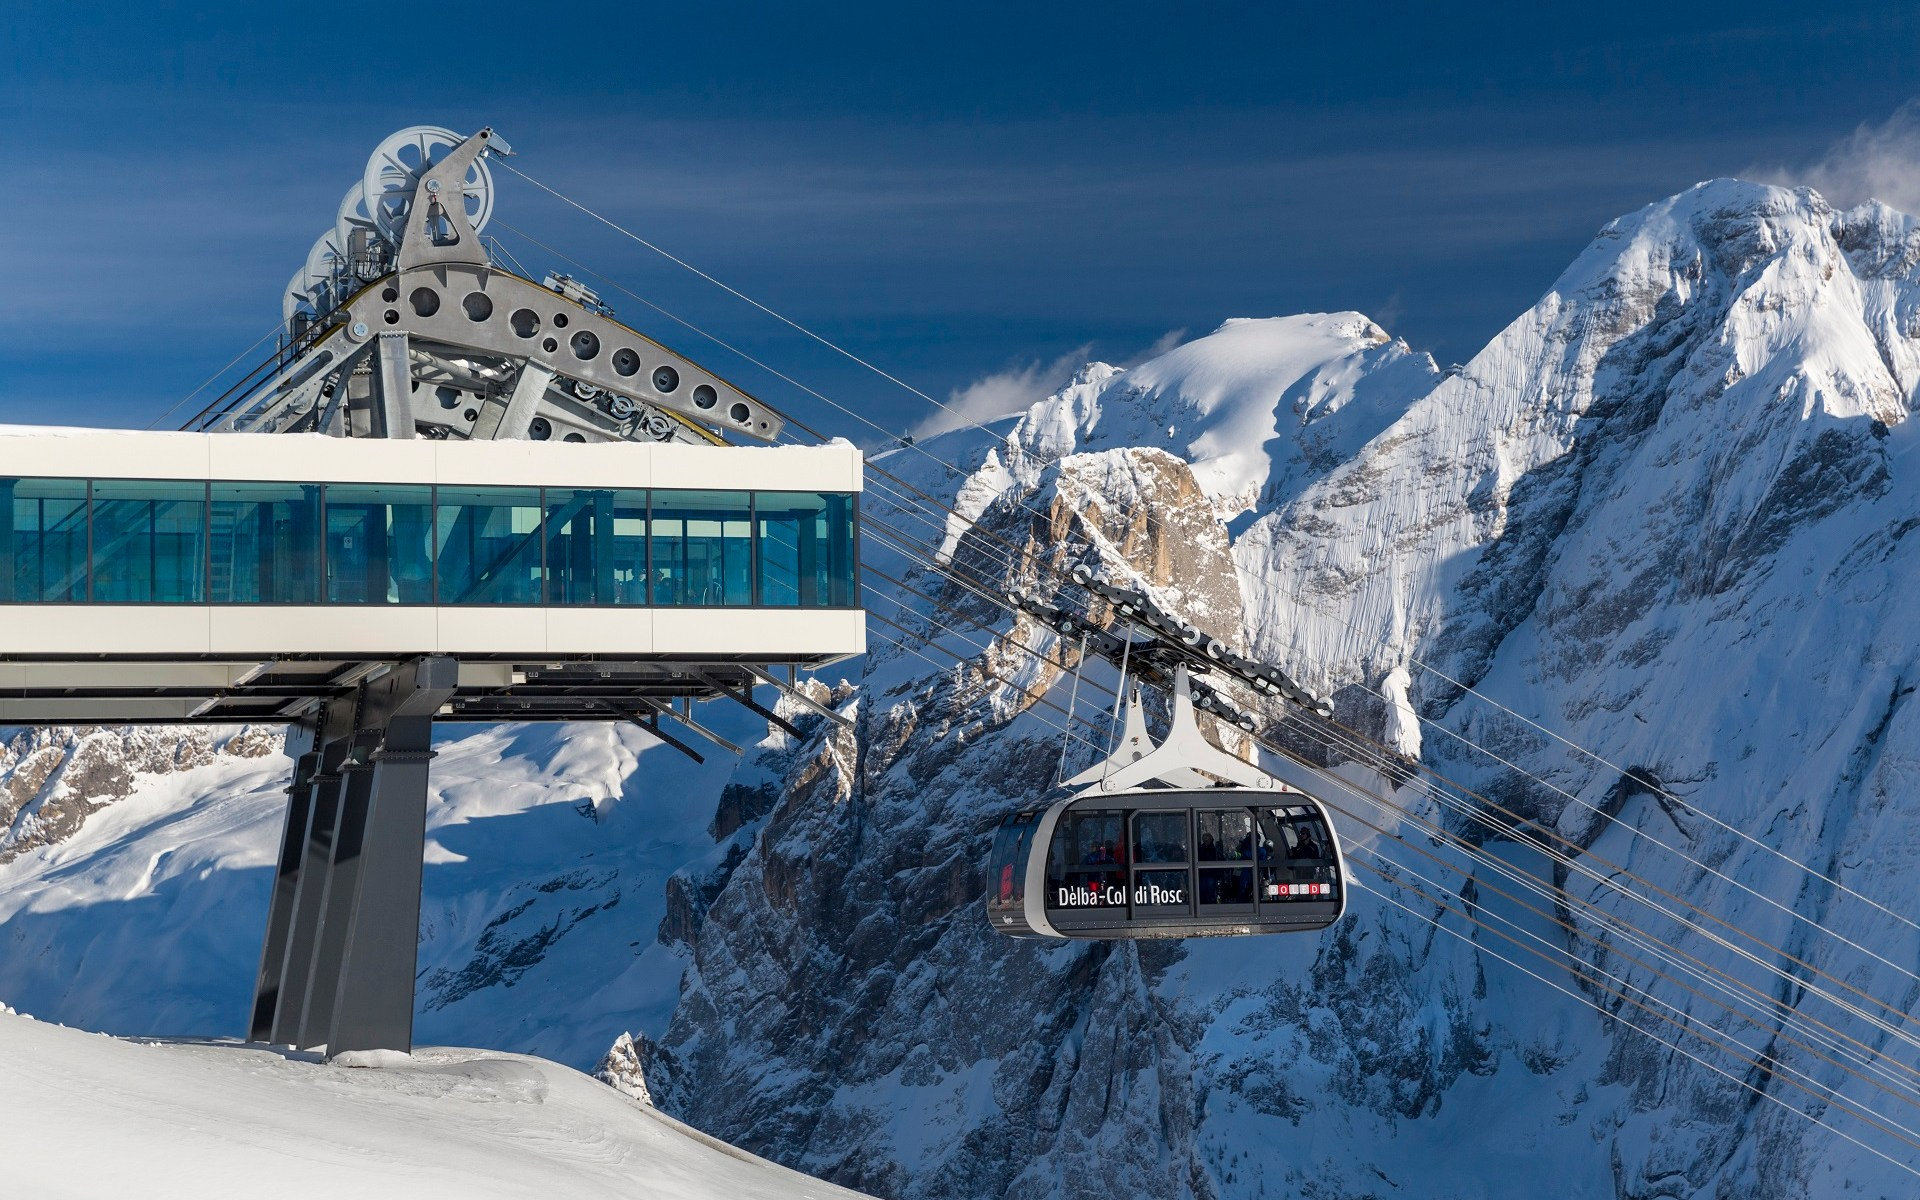 Val di Fassa offers very modern lifts to move you around in a quick way - Photo by Nicolò Miana